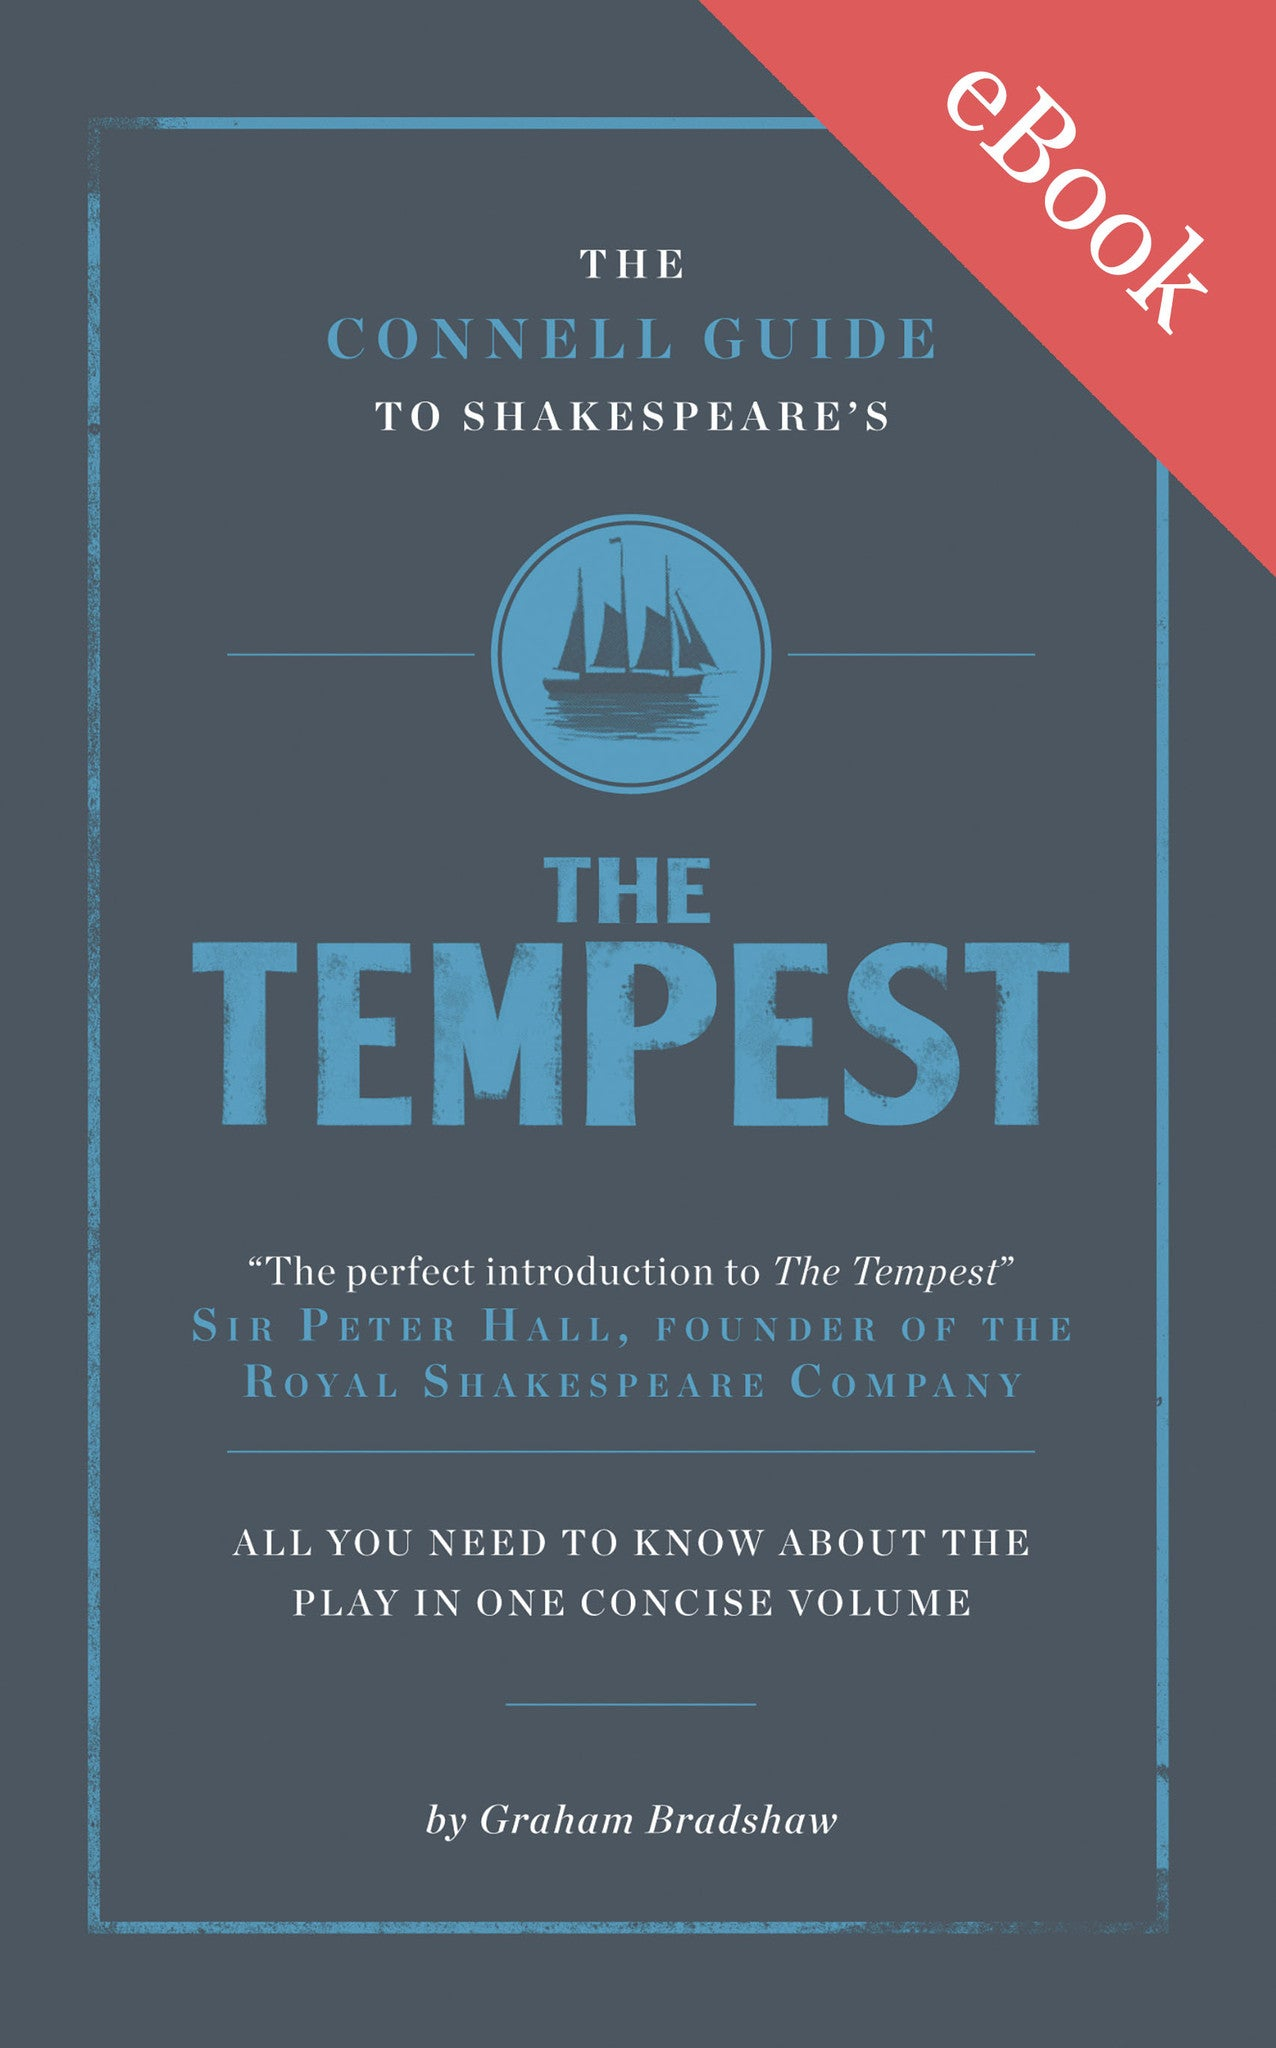 the tempest essay the play s the thing reading shakespeare s plays  shakespeare s the tempest study guide connell guides shakespeare s the tempest study guide